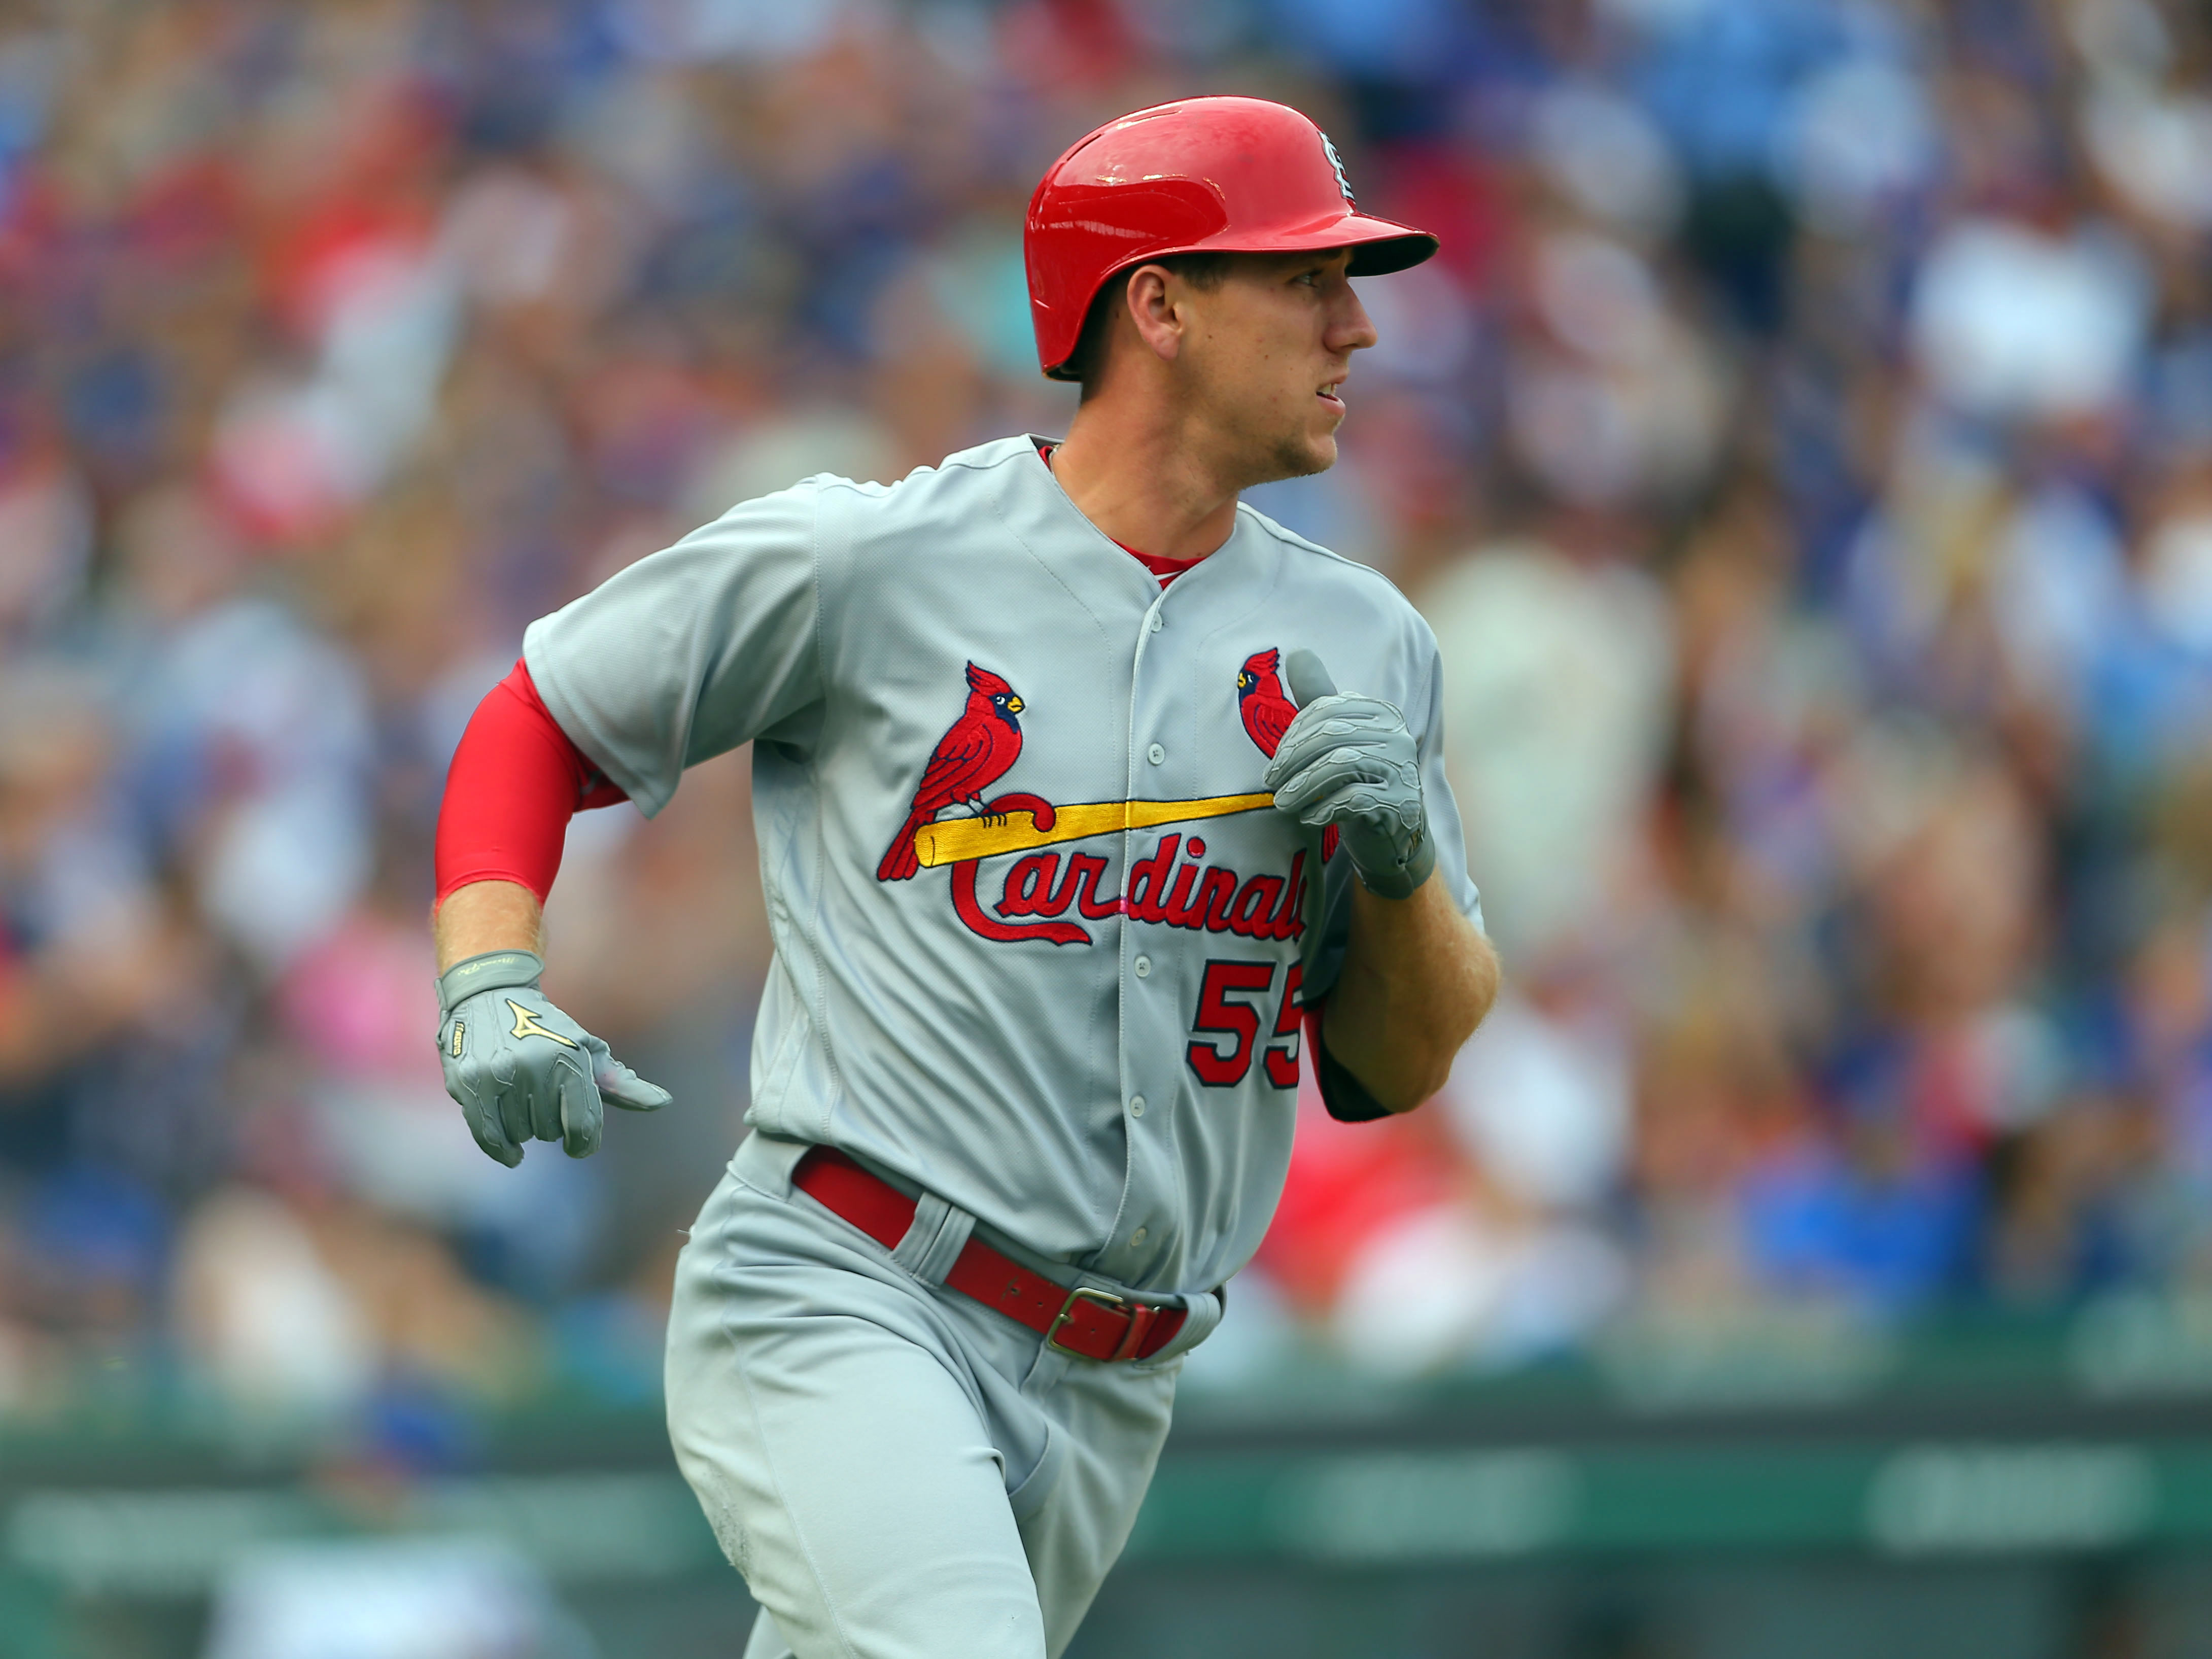 St. Louis Cardinals Agree to Extension with Stephen Piscotty